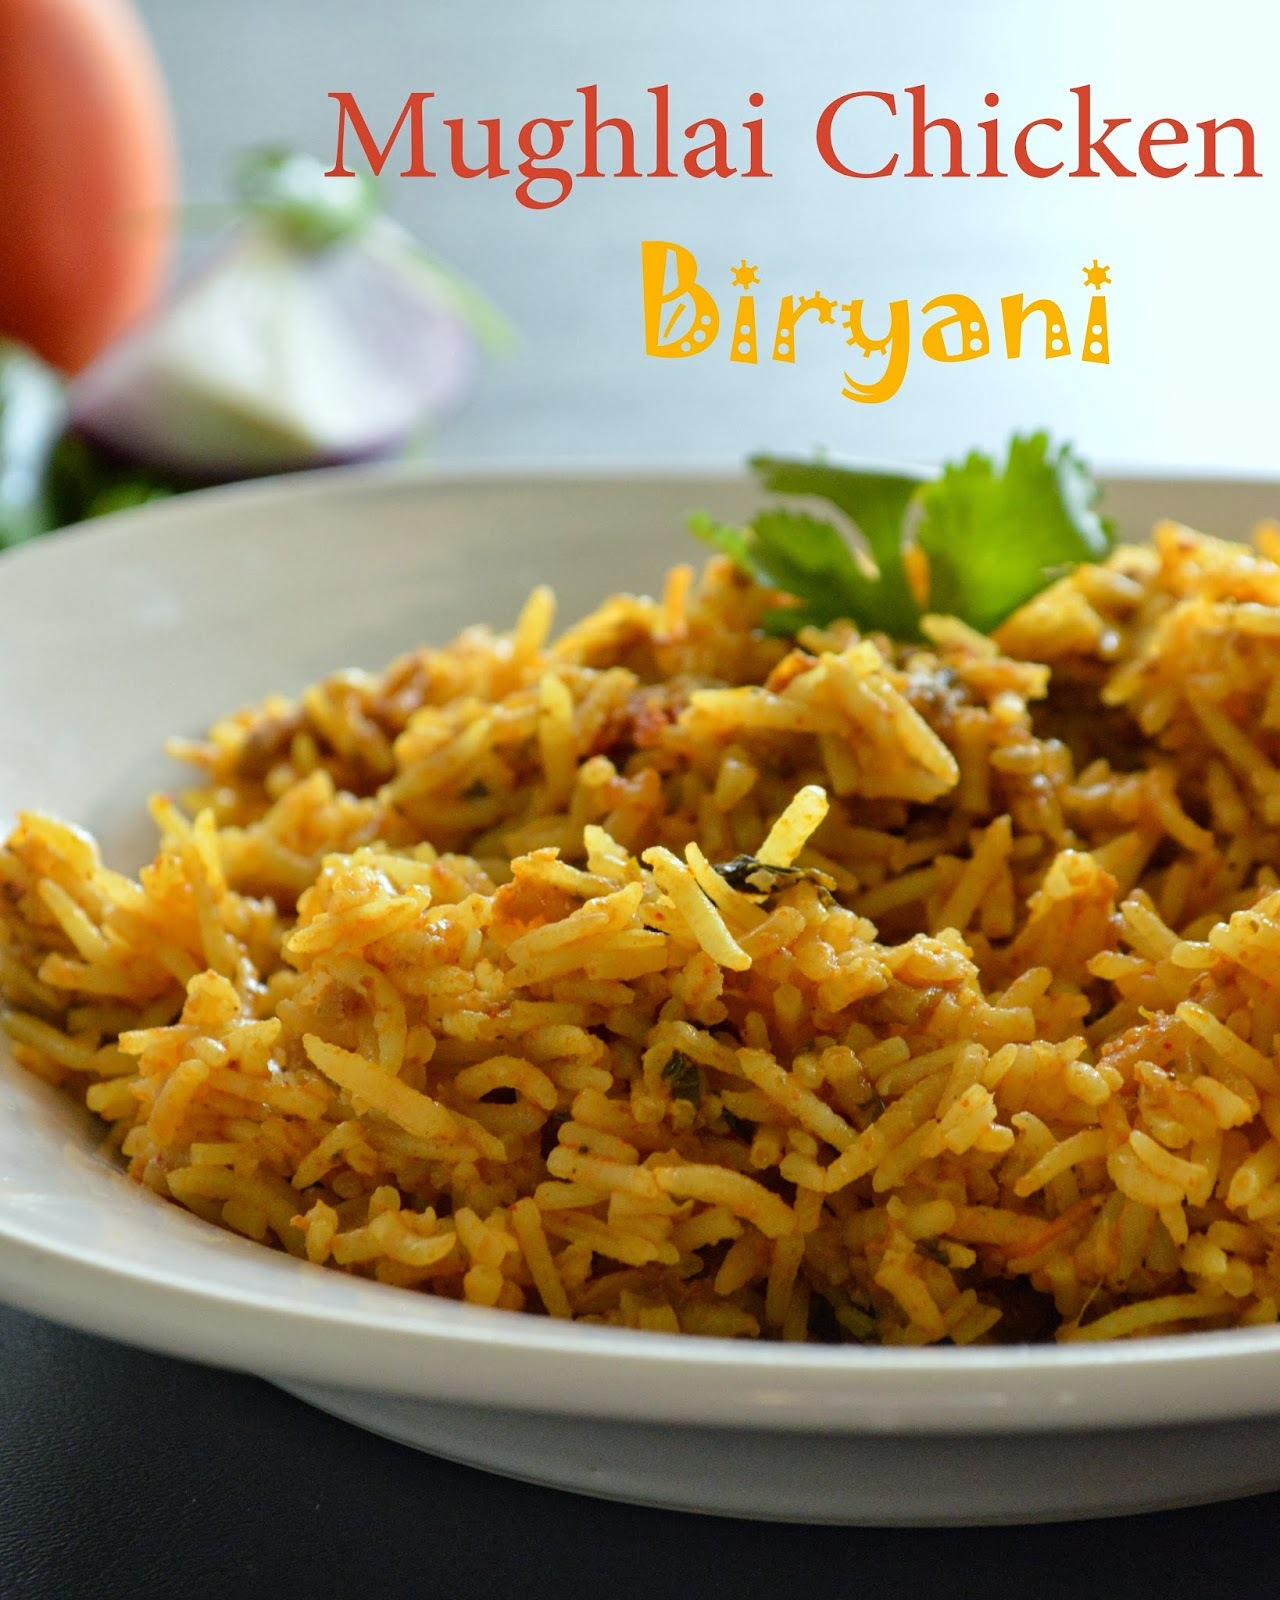 Mughal Biryani | How to make Mughal Biryani Recipe | Mughlai Chicken Biryani Recipe